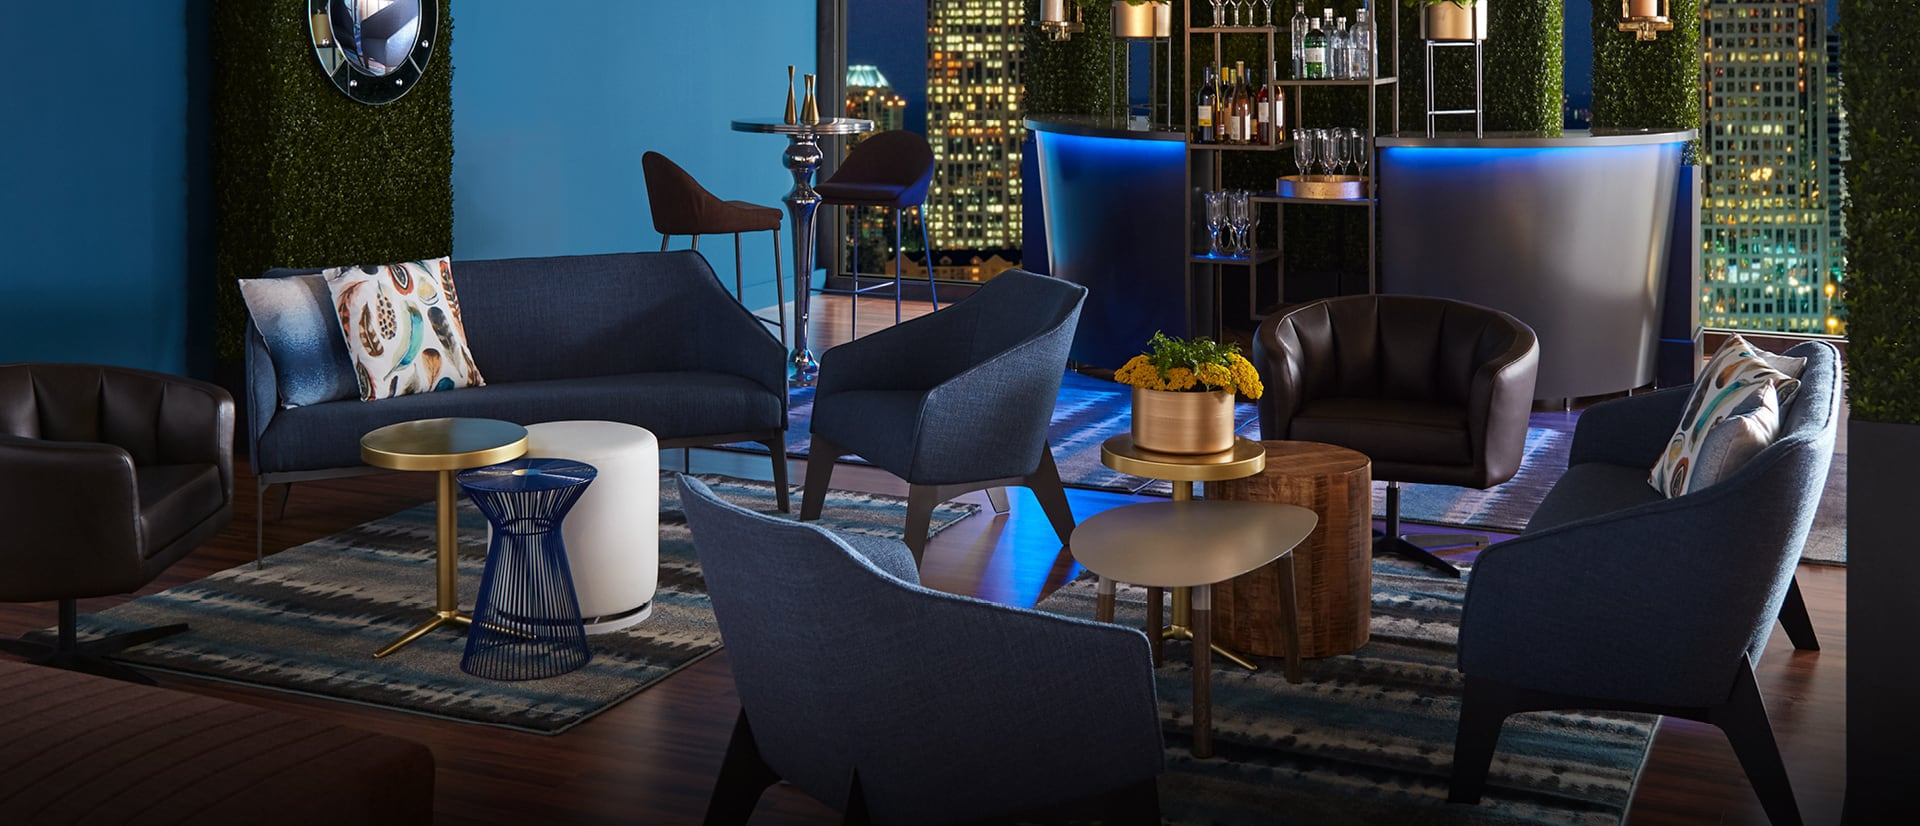 Cocktail reception with blue soft seating and bar with blue light